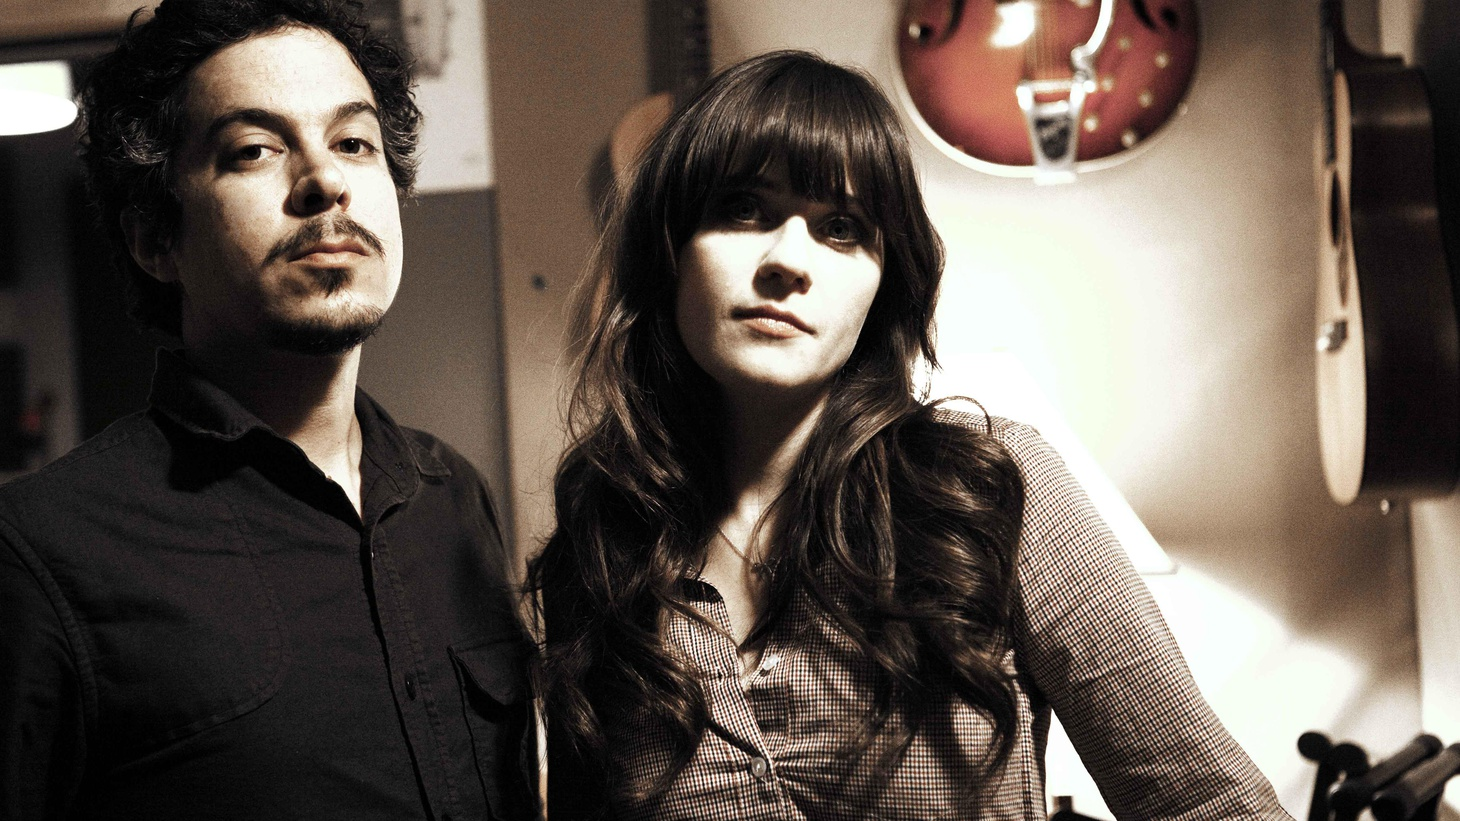 Actress Zooey Deschanel showcases her perfect pop sensibilities on a new set of songs produced with M. Ward. They team up as She & Him to perform their duets on Morning Becomes Eclectic at 11:15am.